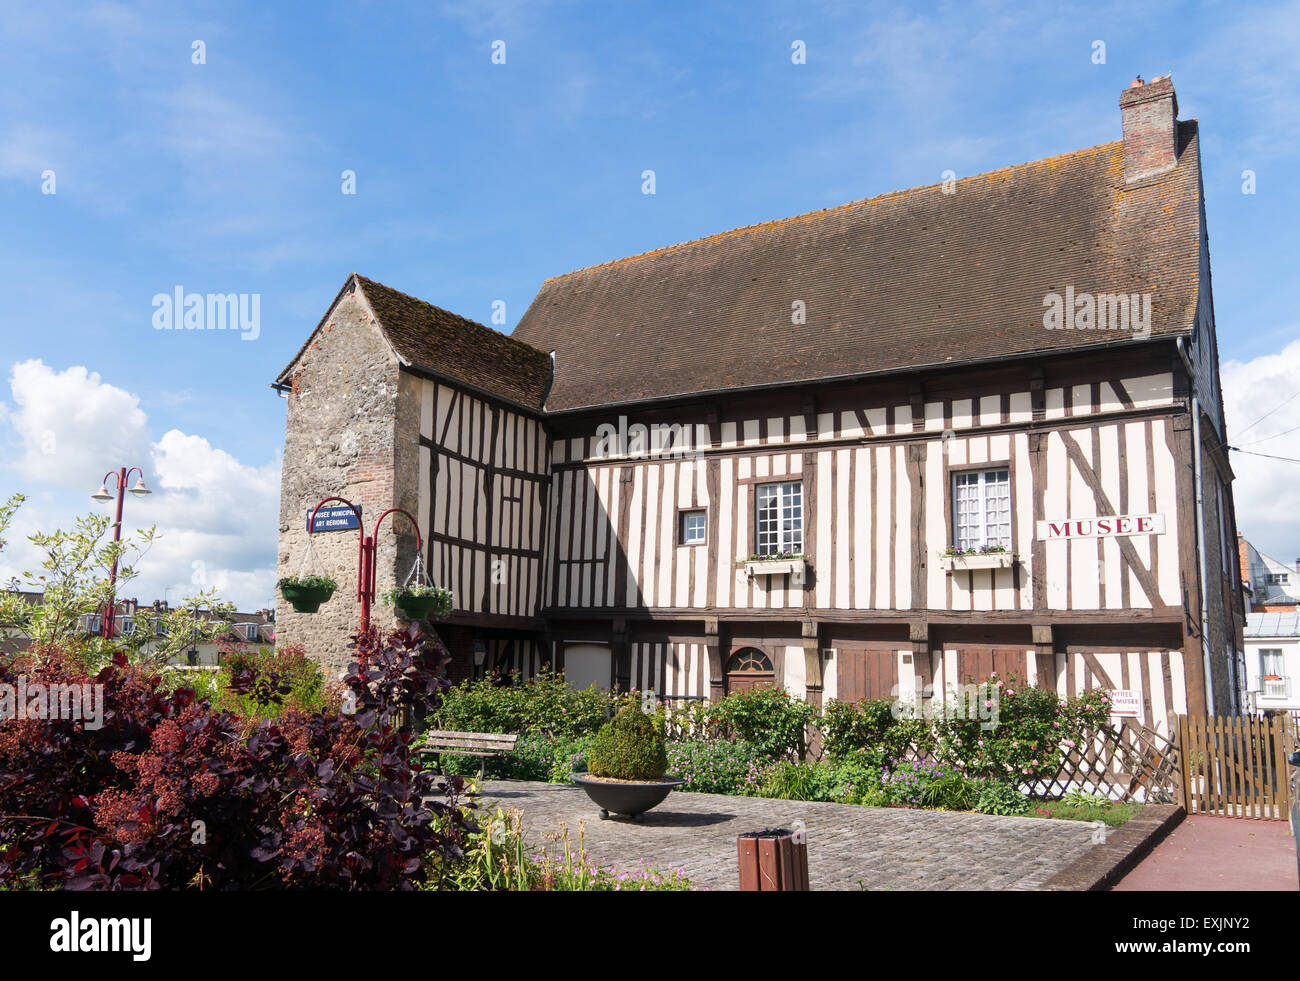 Museum of Mathon Durand at Neufchatel en Bray, Seine-Maritime, Normandy, France - Stock Image